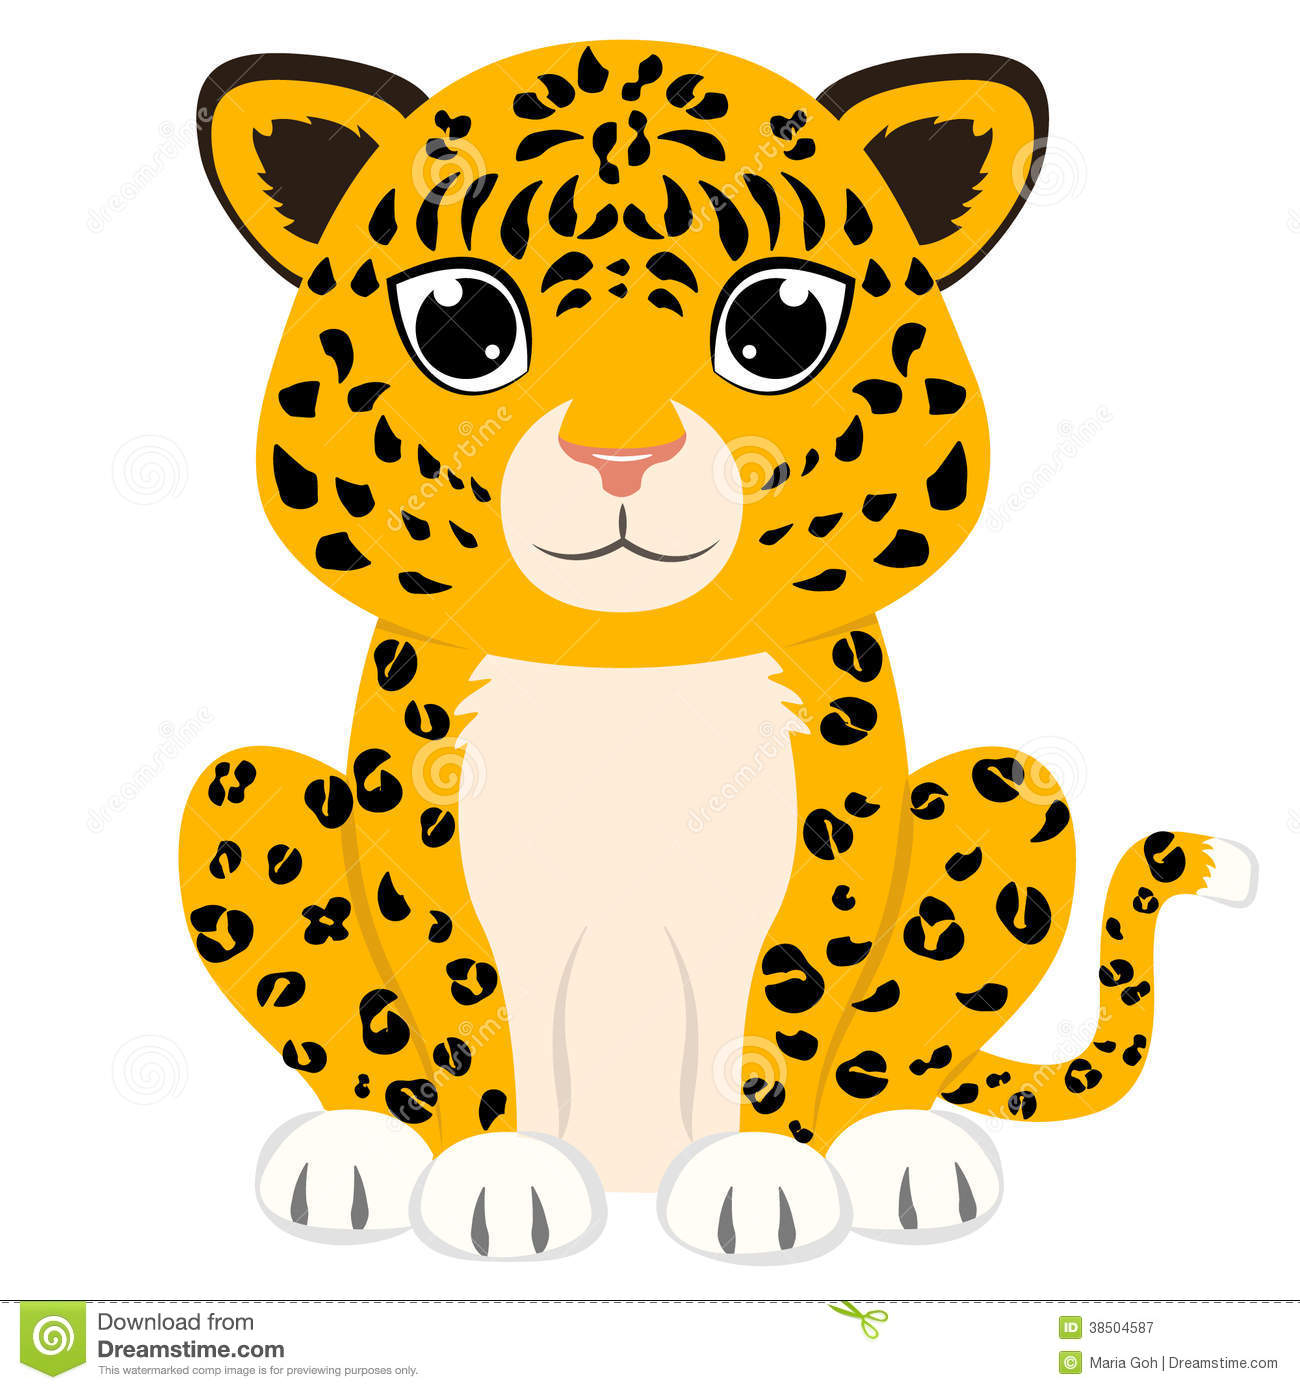 Leopard Royalty Free Stock Photography - Image: 38504587